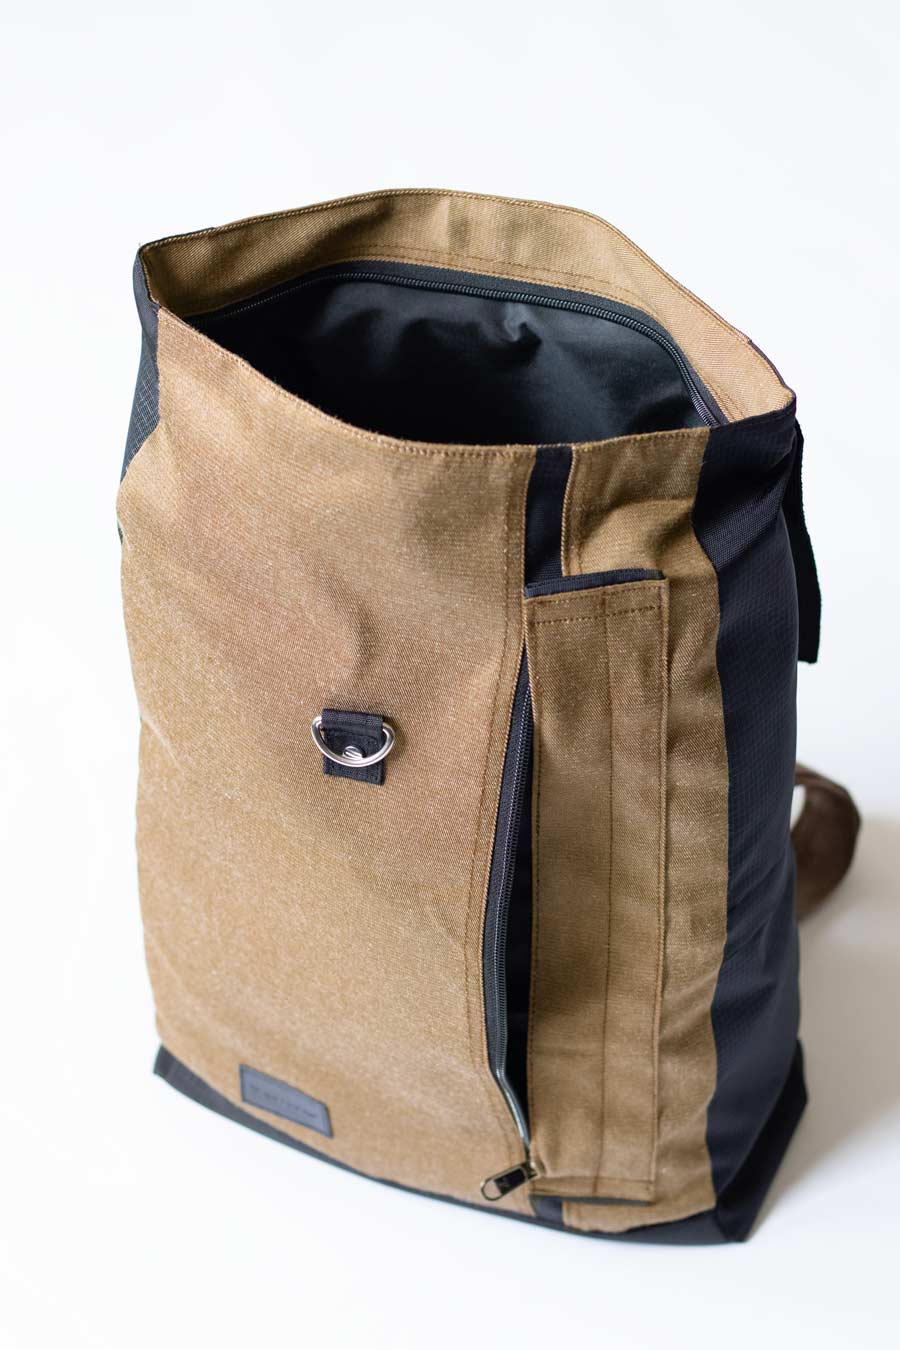 Backpack for men and women by Wildgear